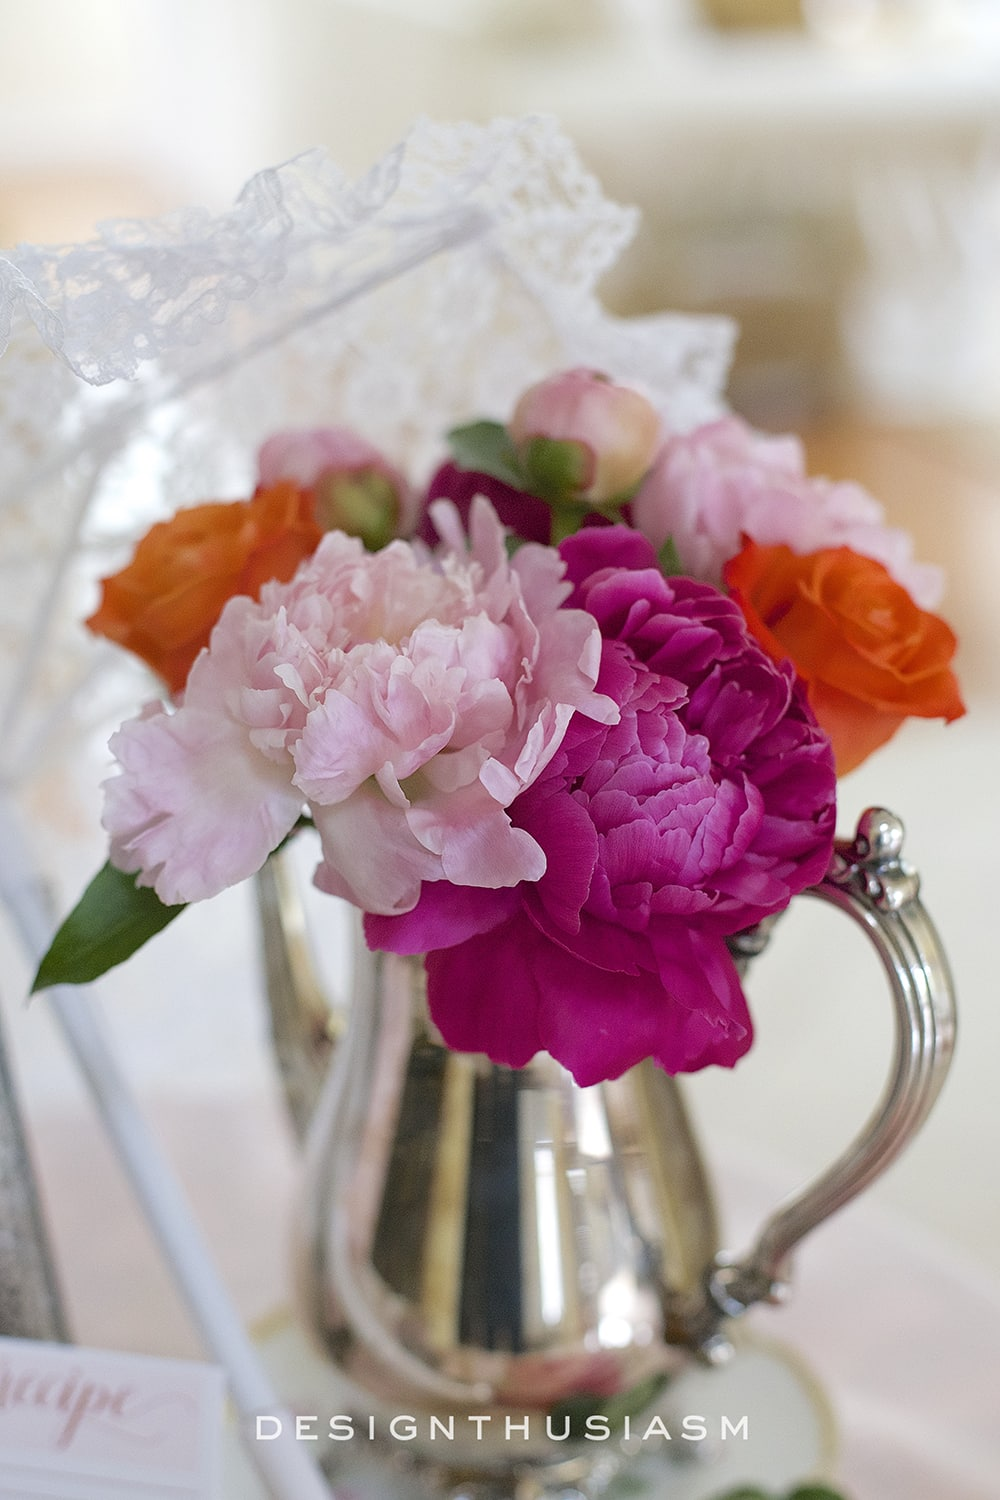 May Flowers for a Bridal Shower | Designthusiasm.com